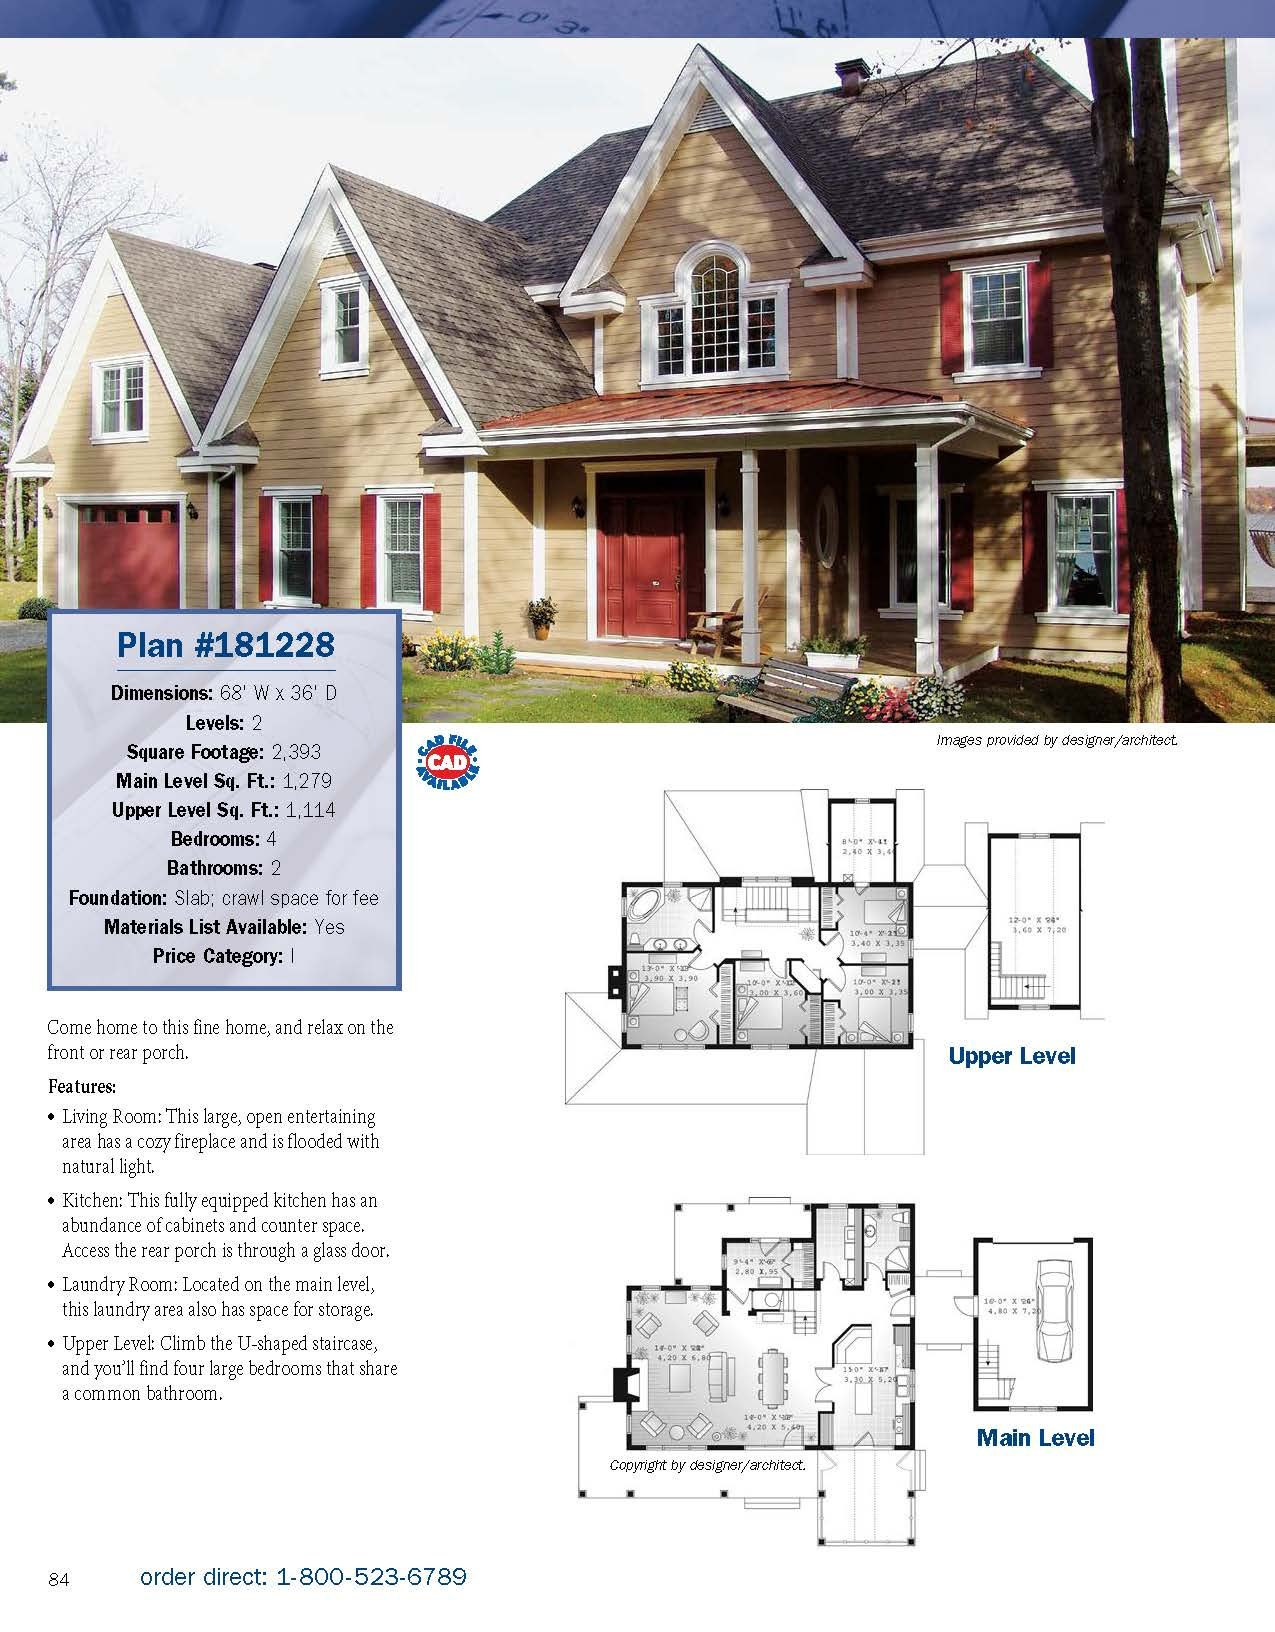 Creative homeowner new ultimate book of home plans for The new ultimate book of home plans pdf